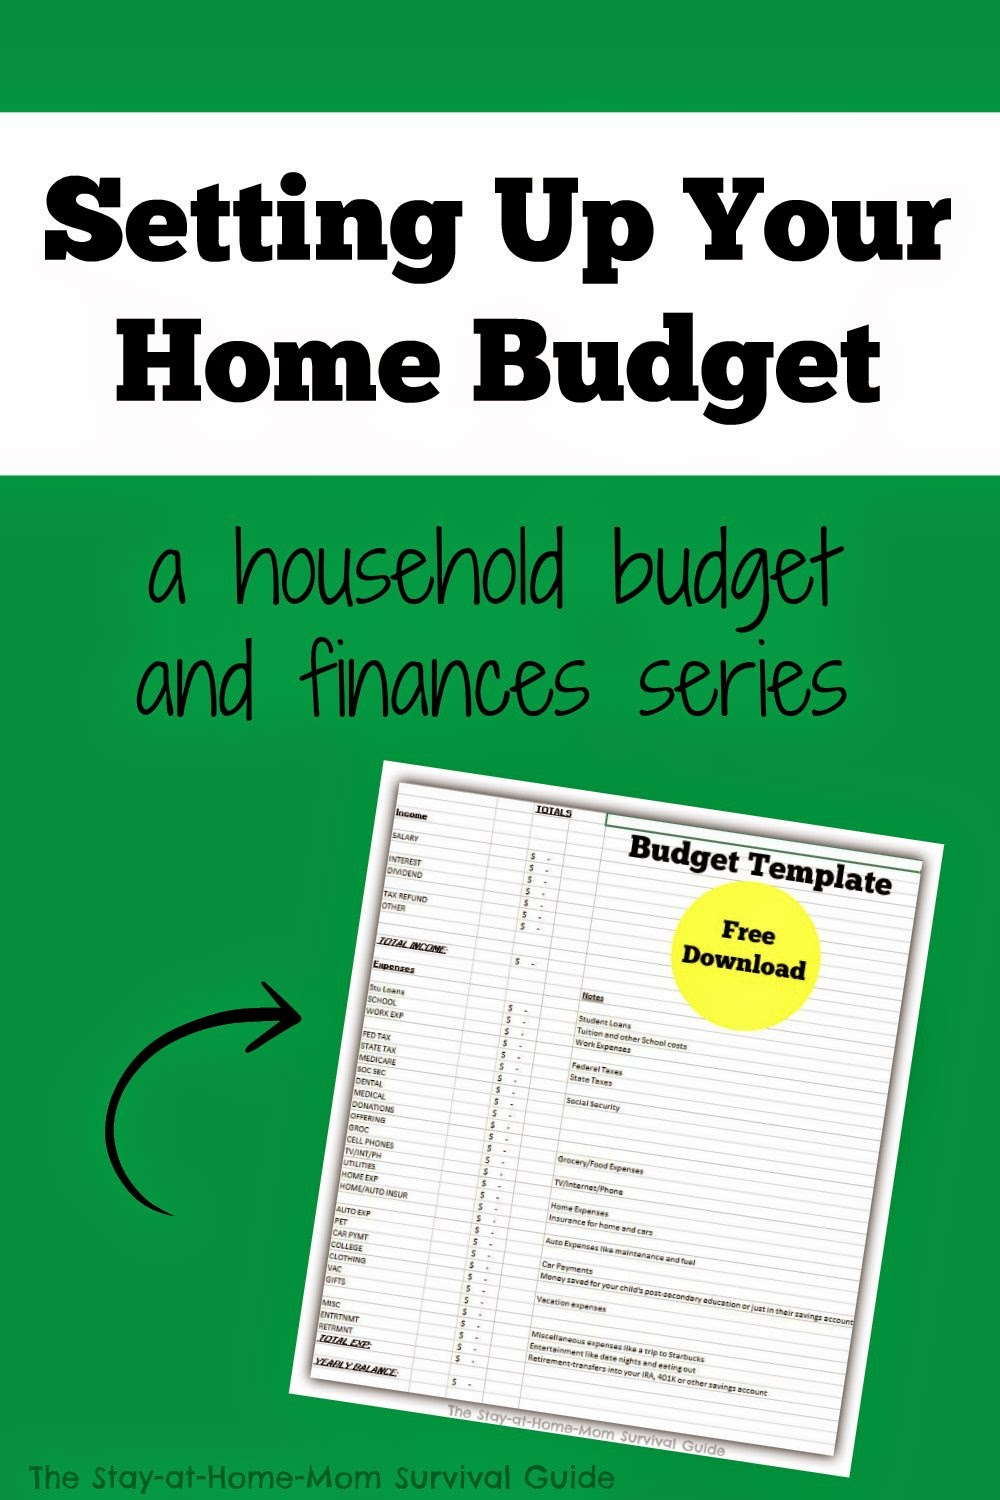 Setting Up Your Home Budget {Free Download}